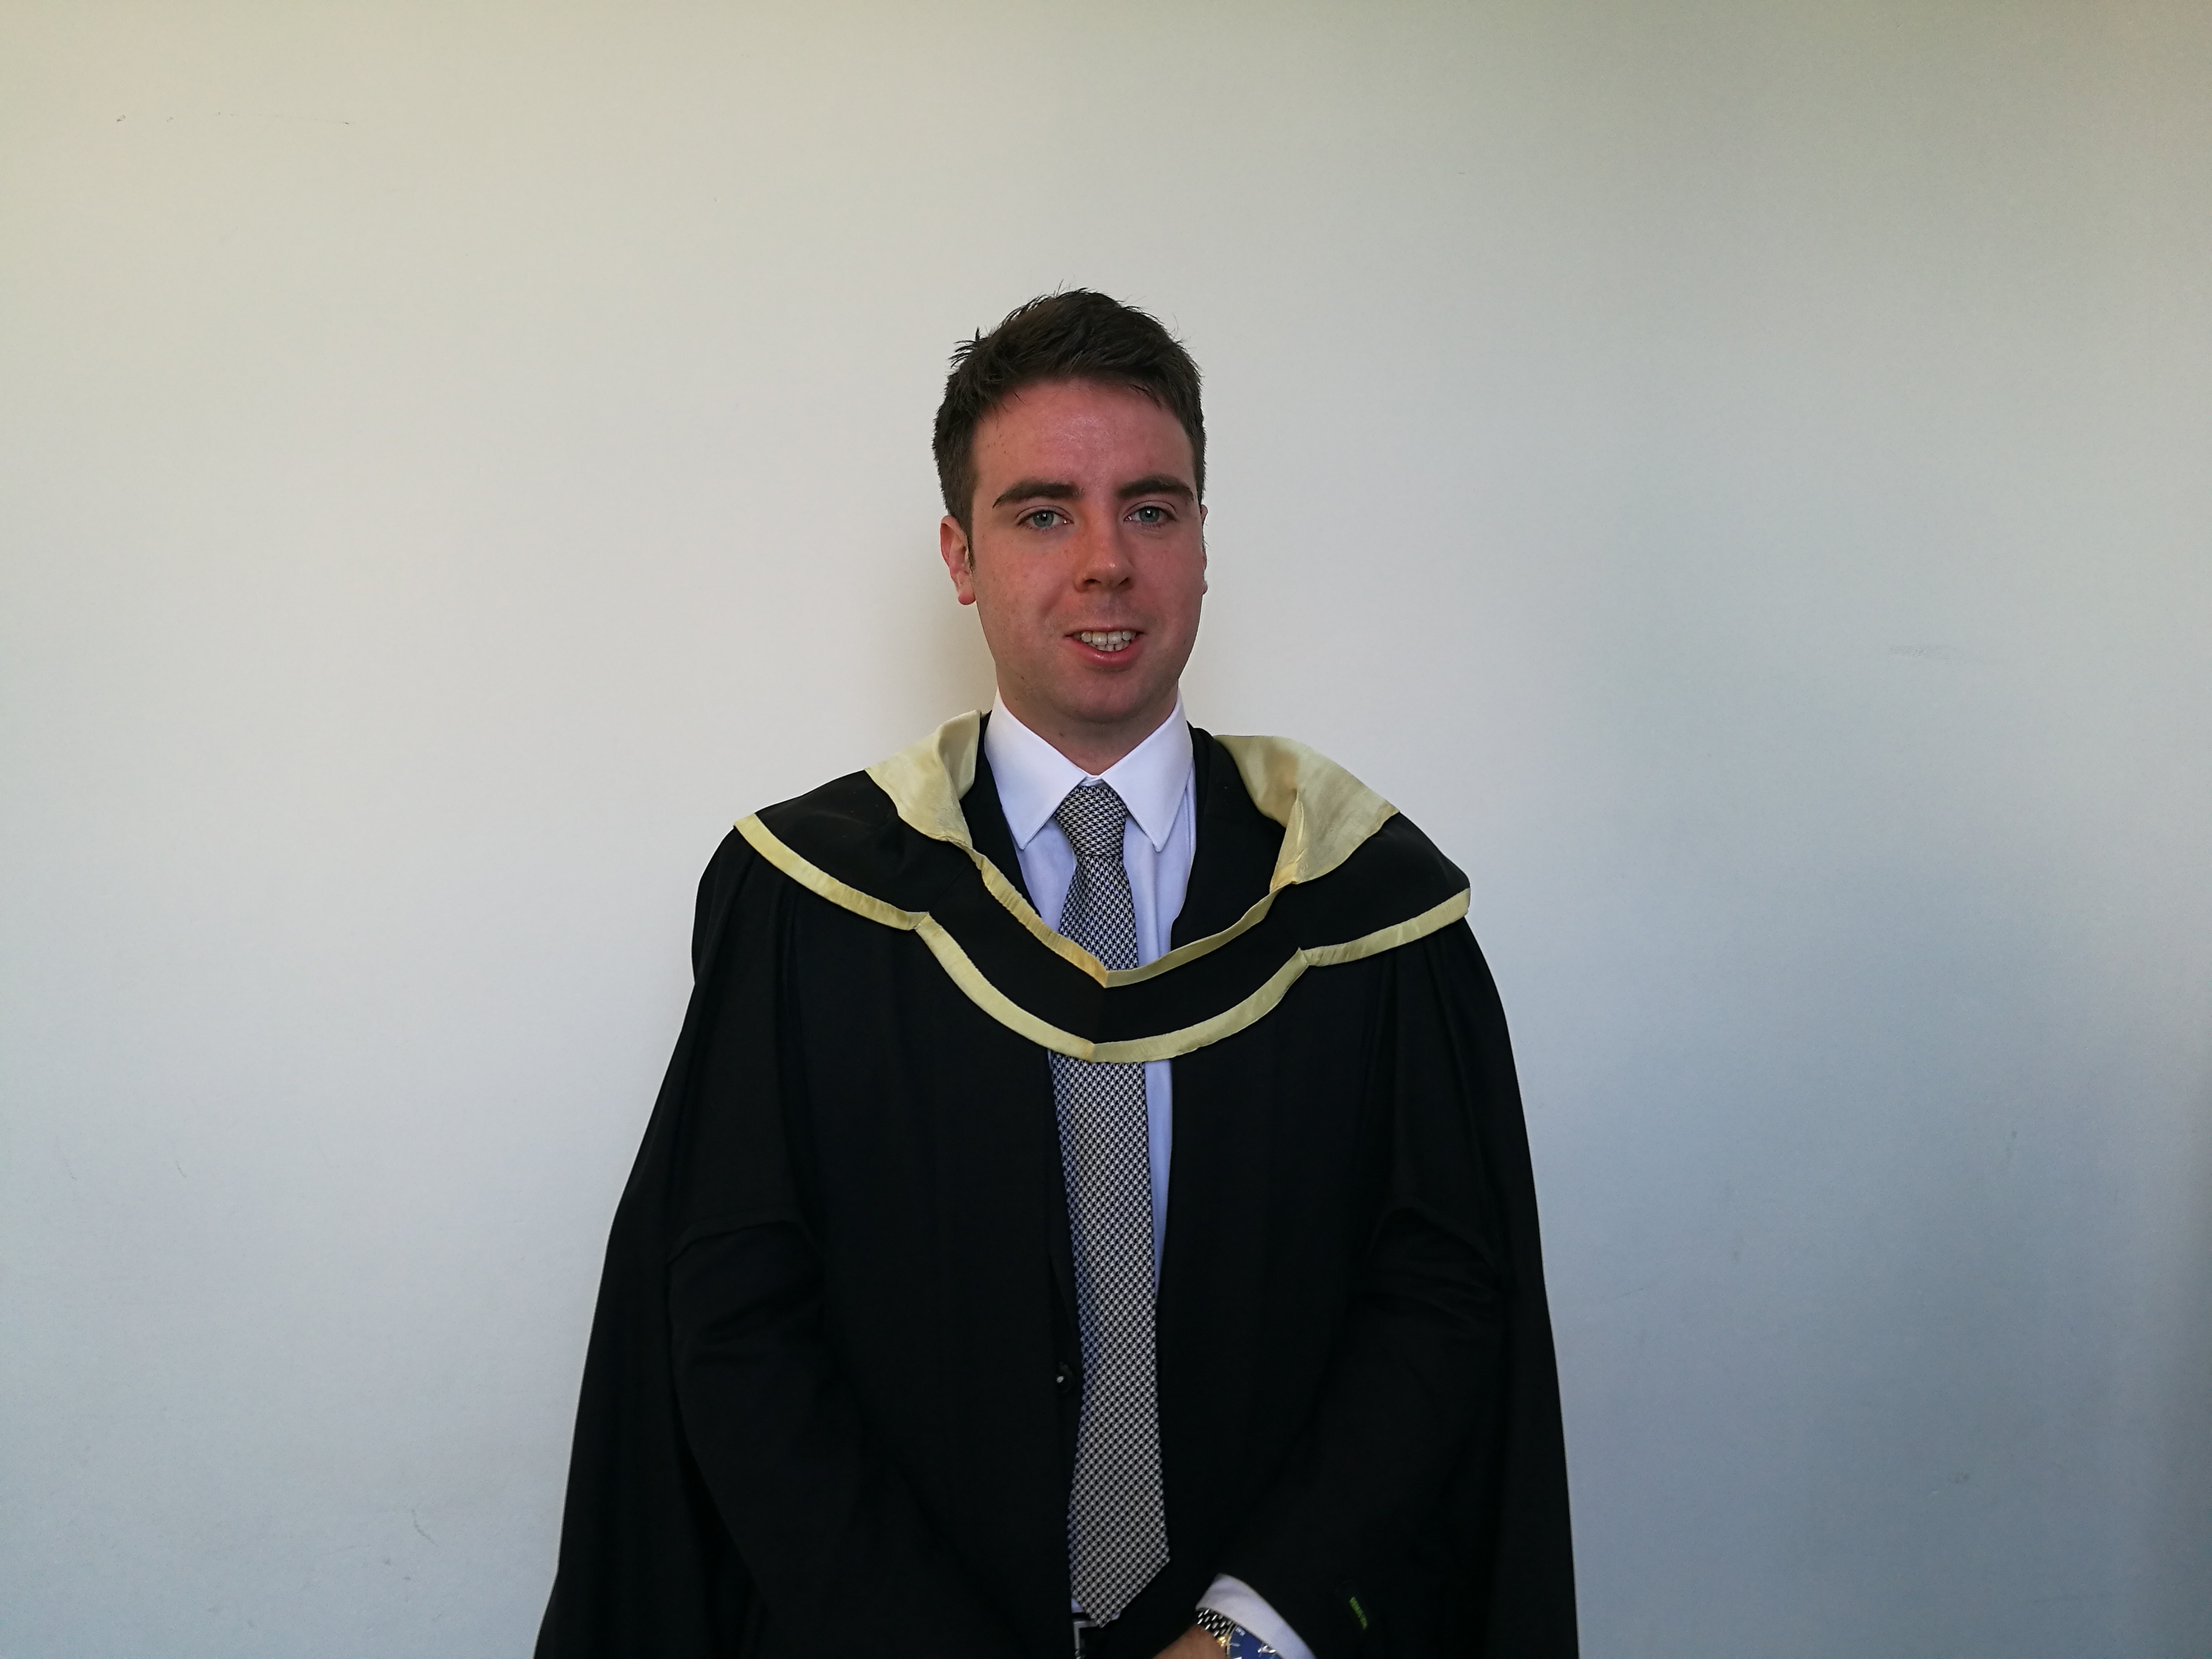 Mark Keenan, MBS Economics & Finance graduate from Longford